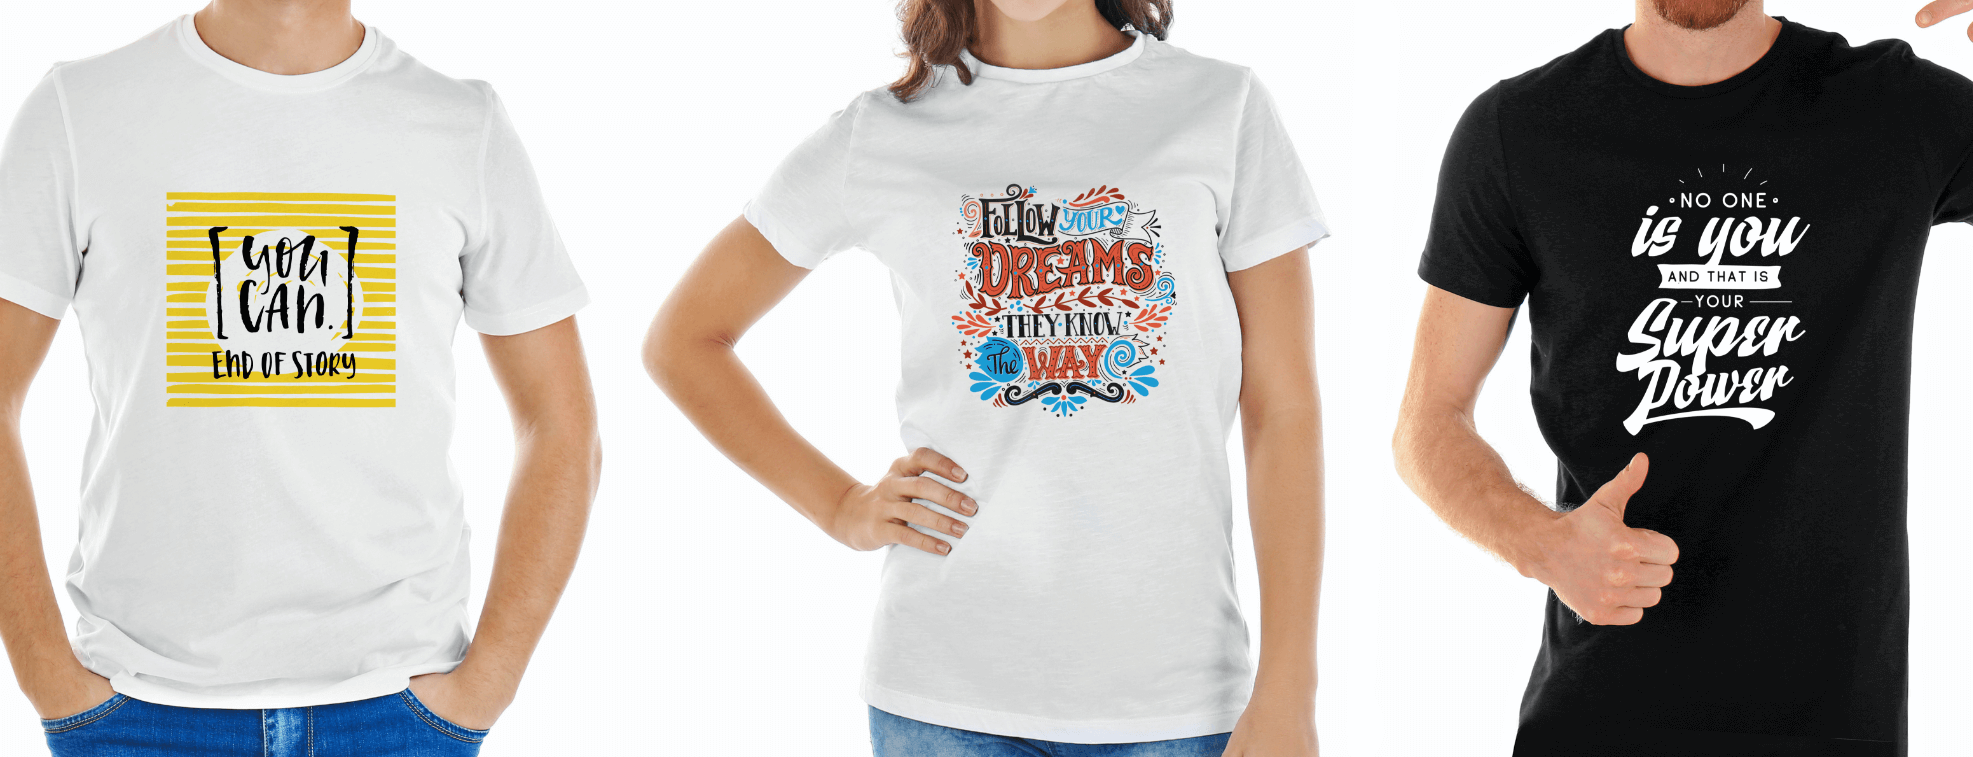 Inspirational words on white and black T-shirts